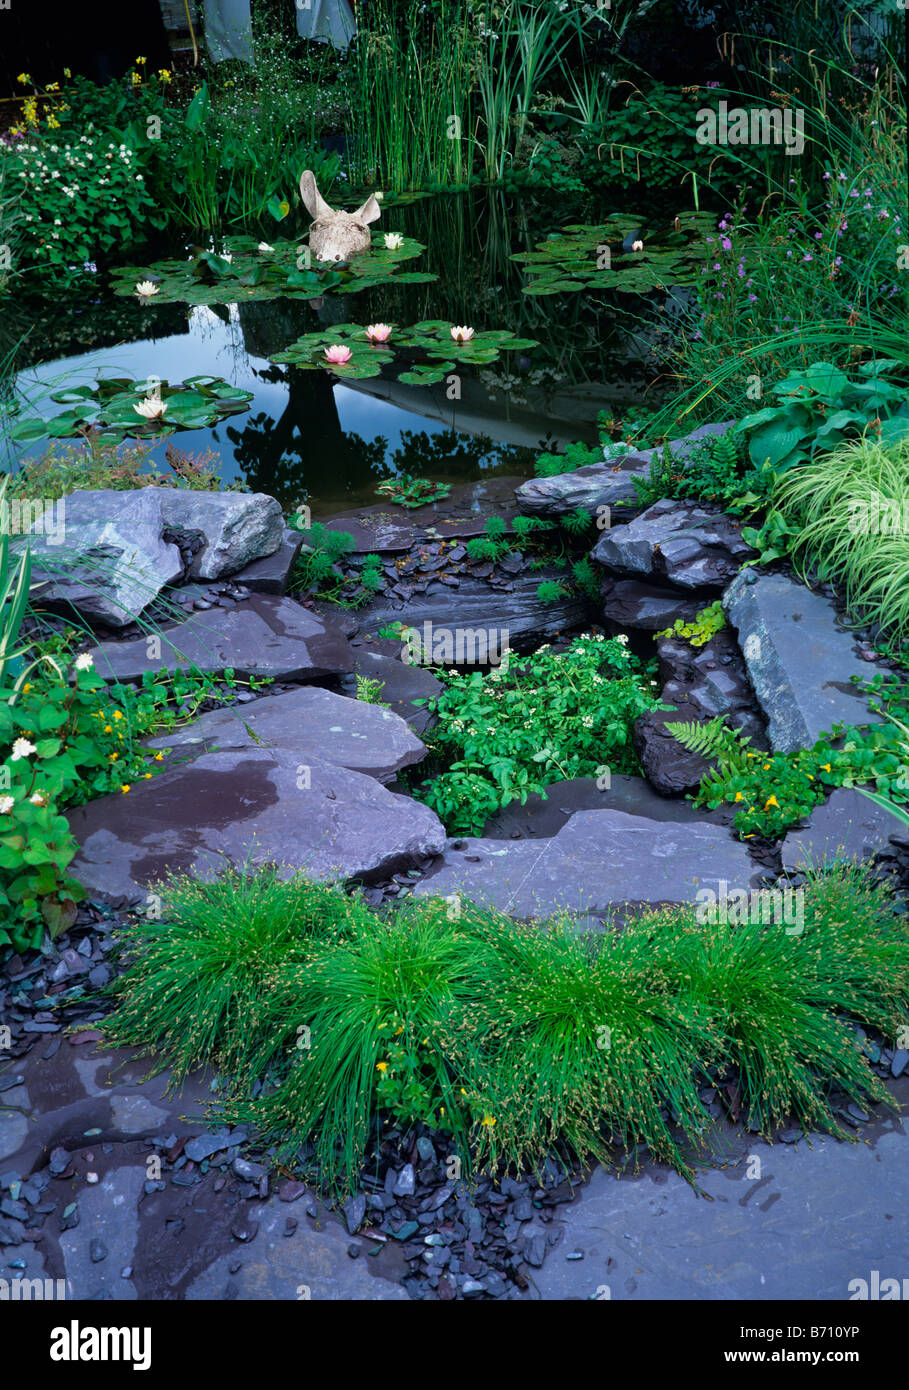 Water Lily pool and dry stream with donkey figure in the water - Stock Image